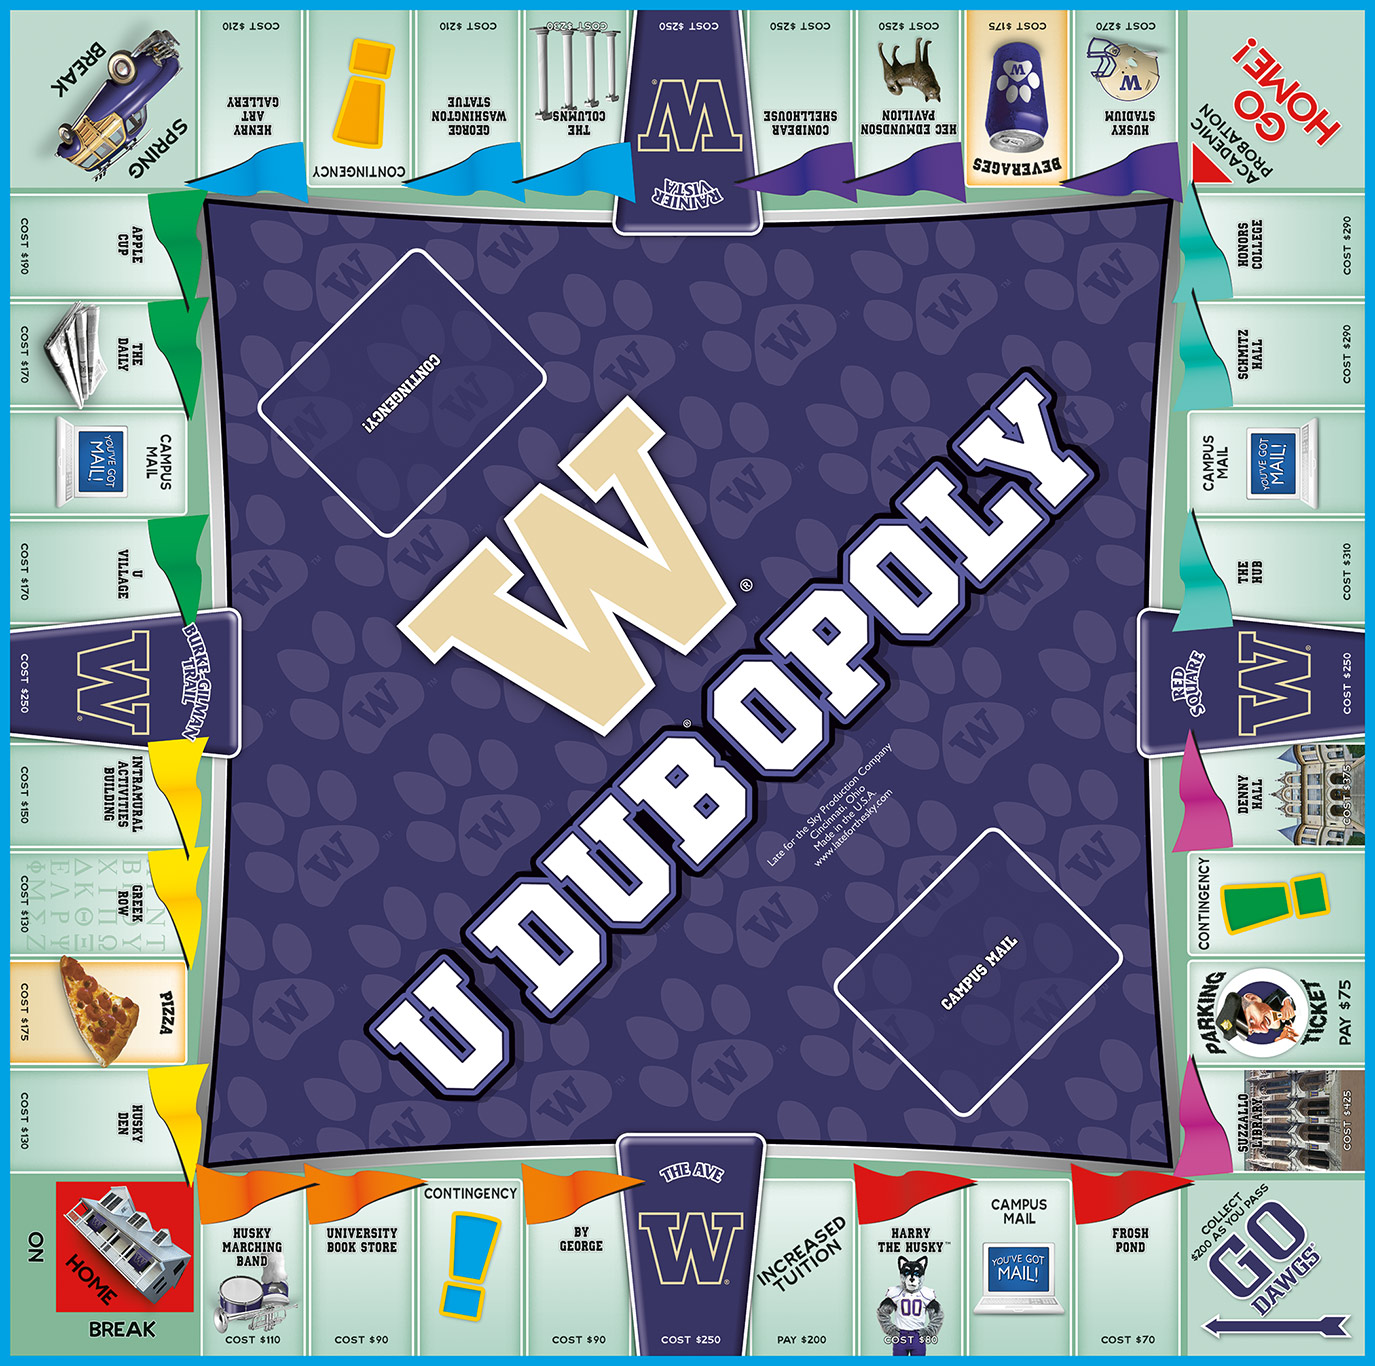 UDUBOPOLY Board Game